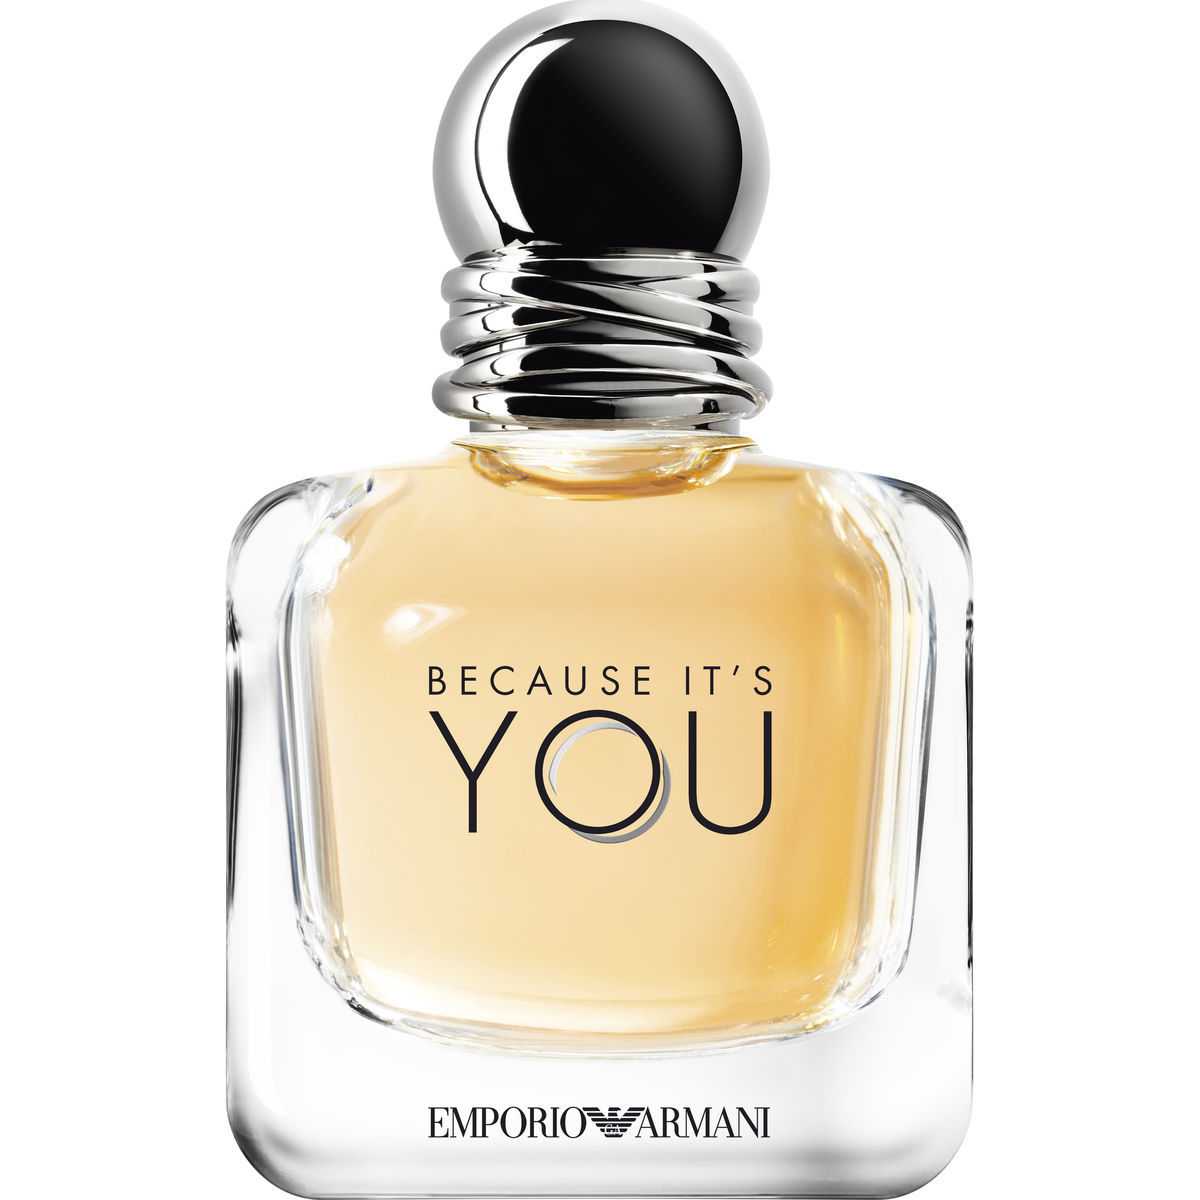 Emporio Armani Because it´s you, Eau de Parfum, 50 ml